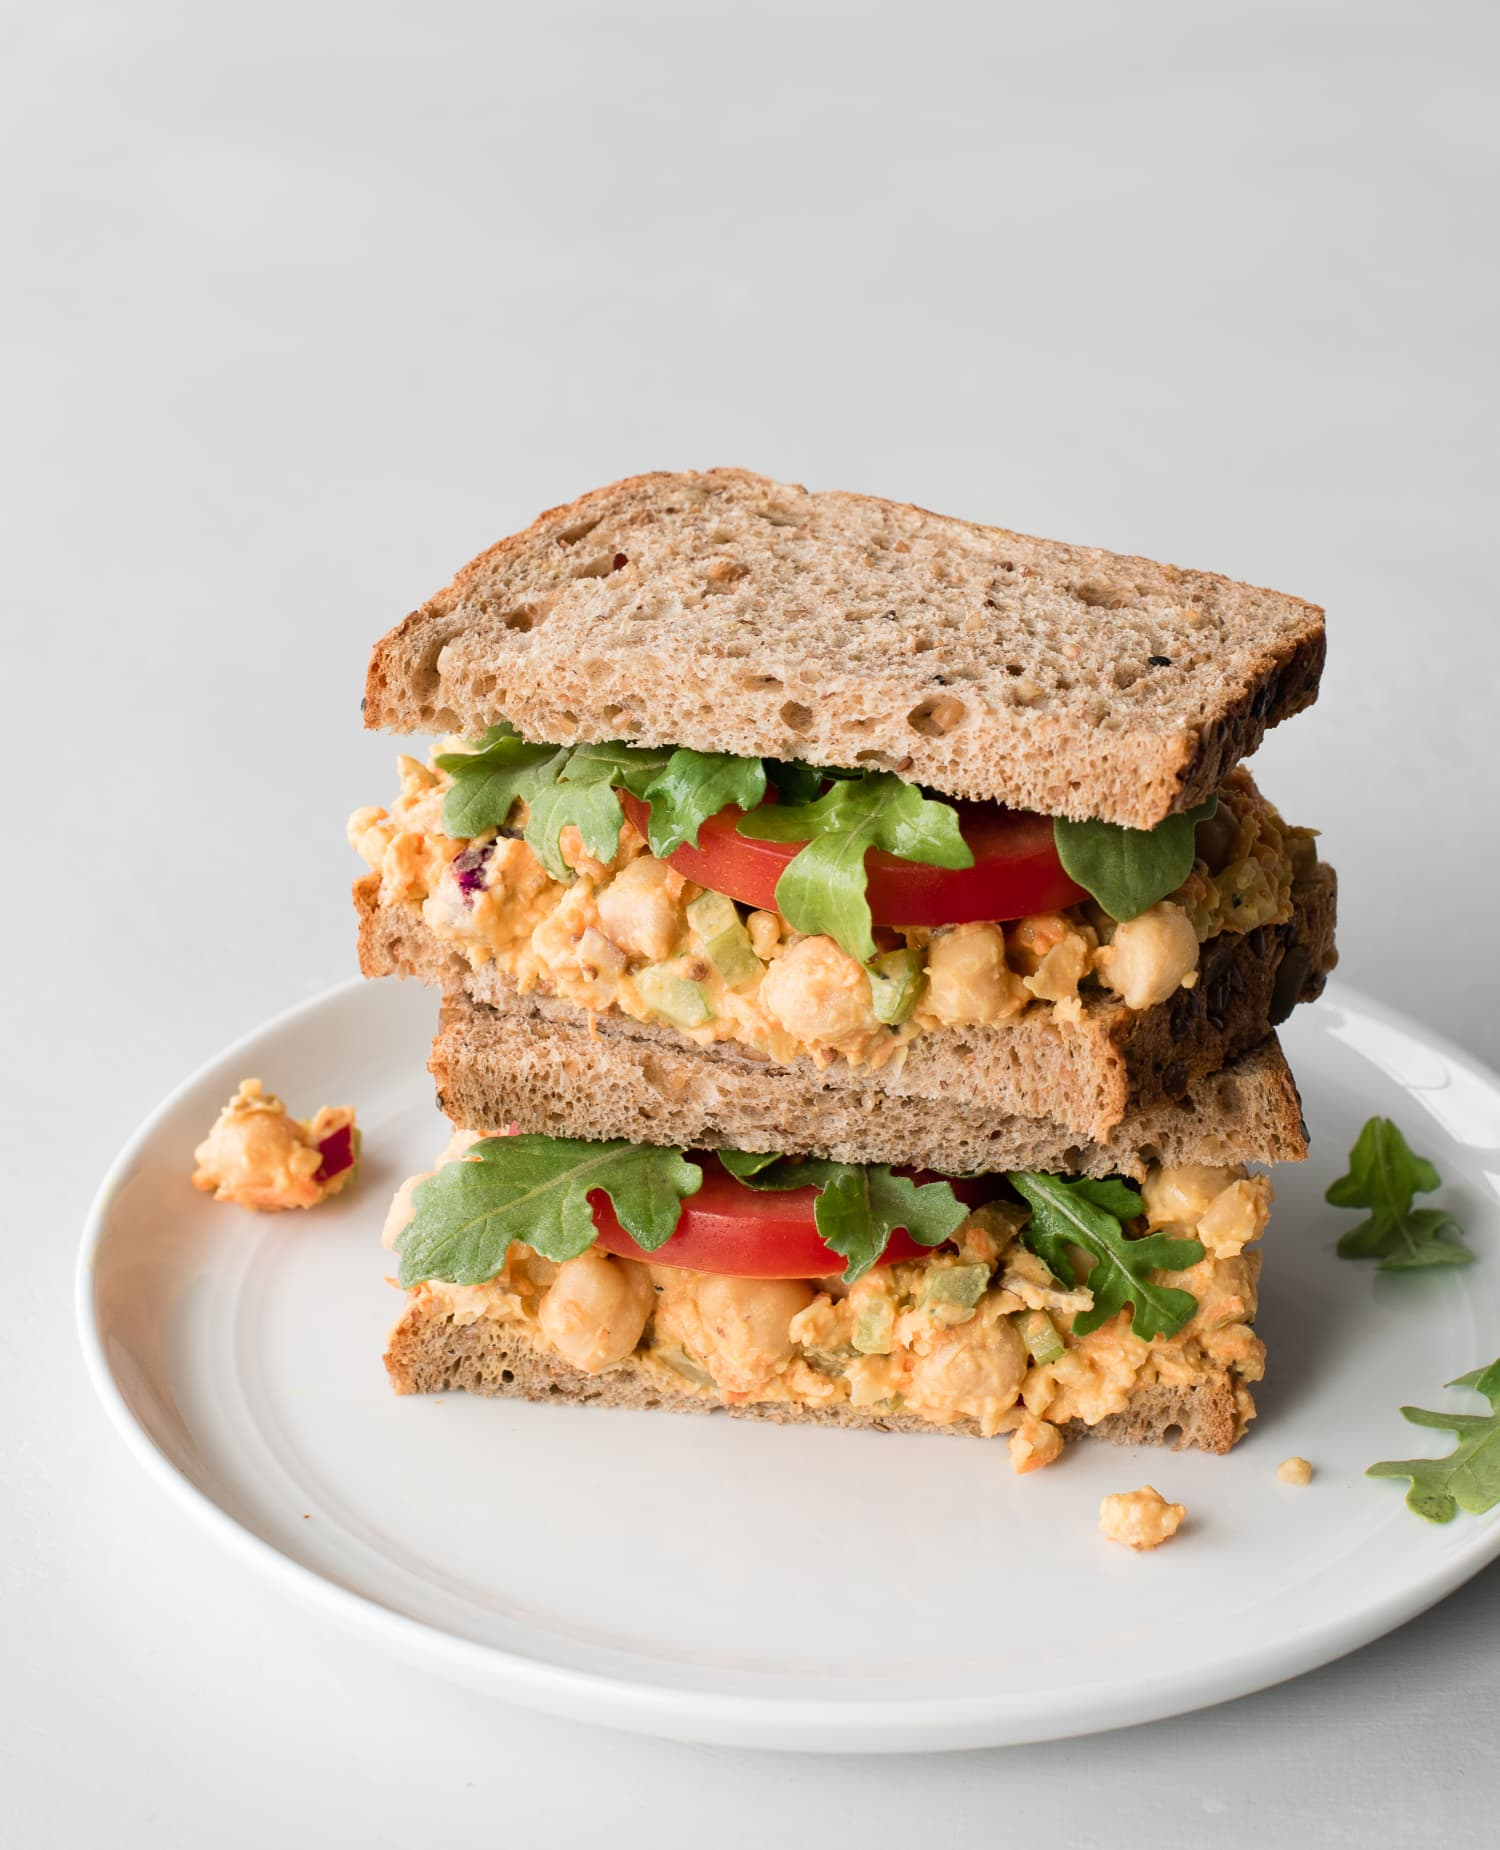 Give Your Body a Boost with This 10-Minute Smashed Chickpea Salad Sandwich